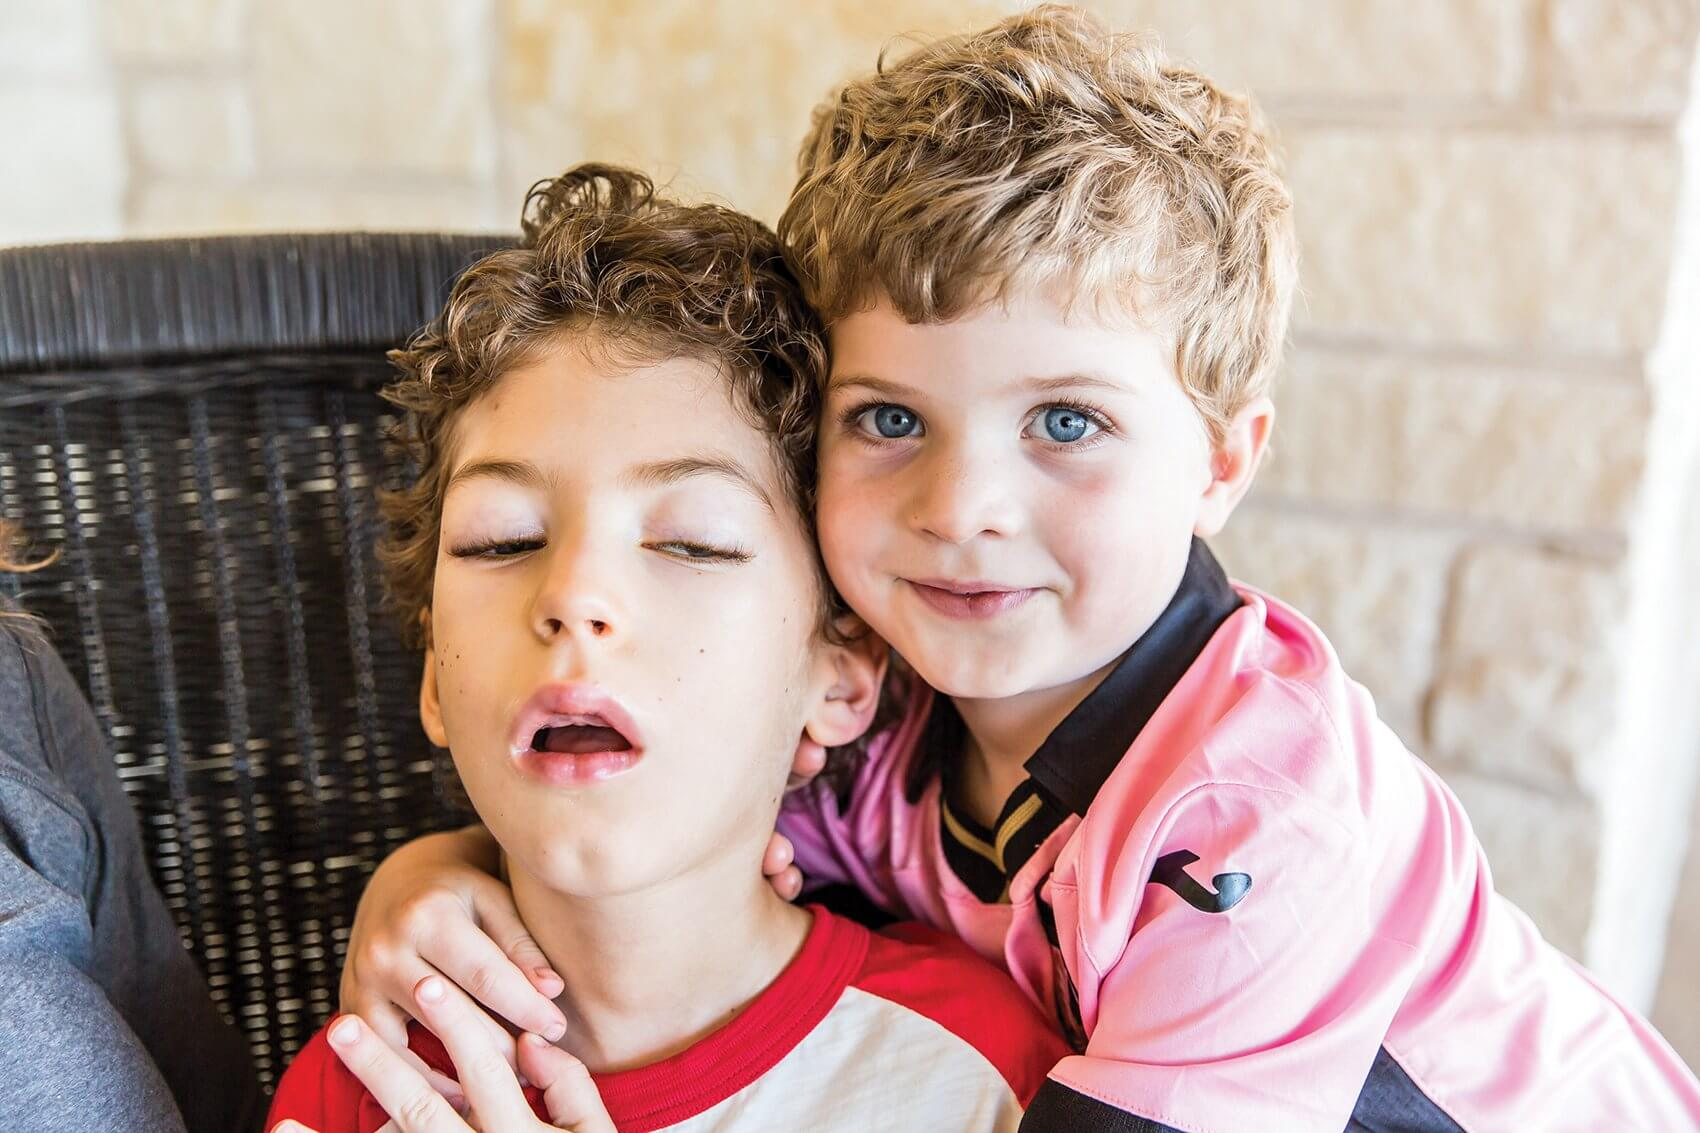 Jacob, left, is a patient at Texas Children's Hospital and Baylor College of Medicine. (Credit: Robbyn Dodd)